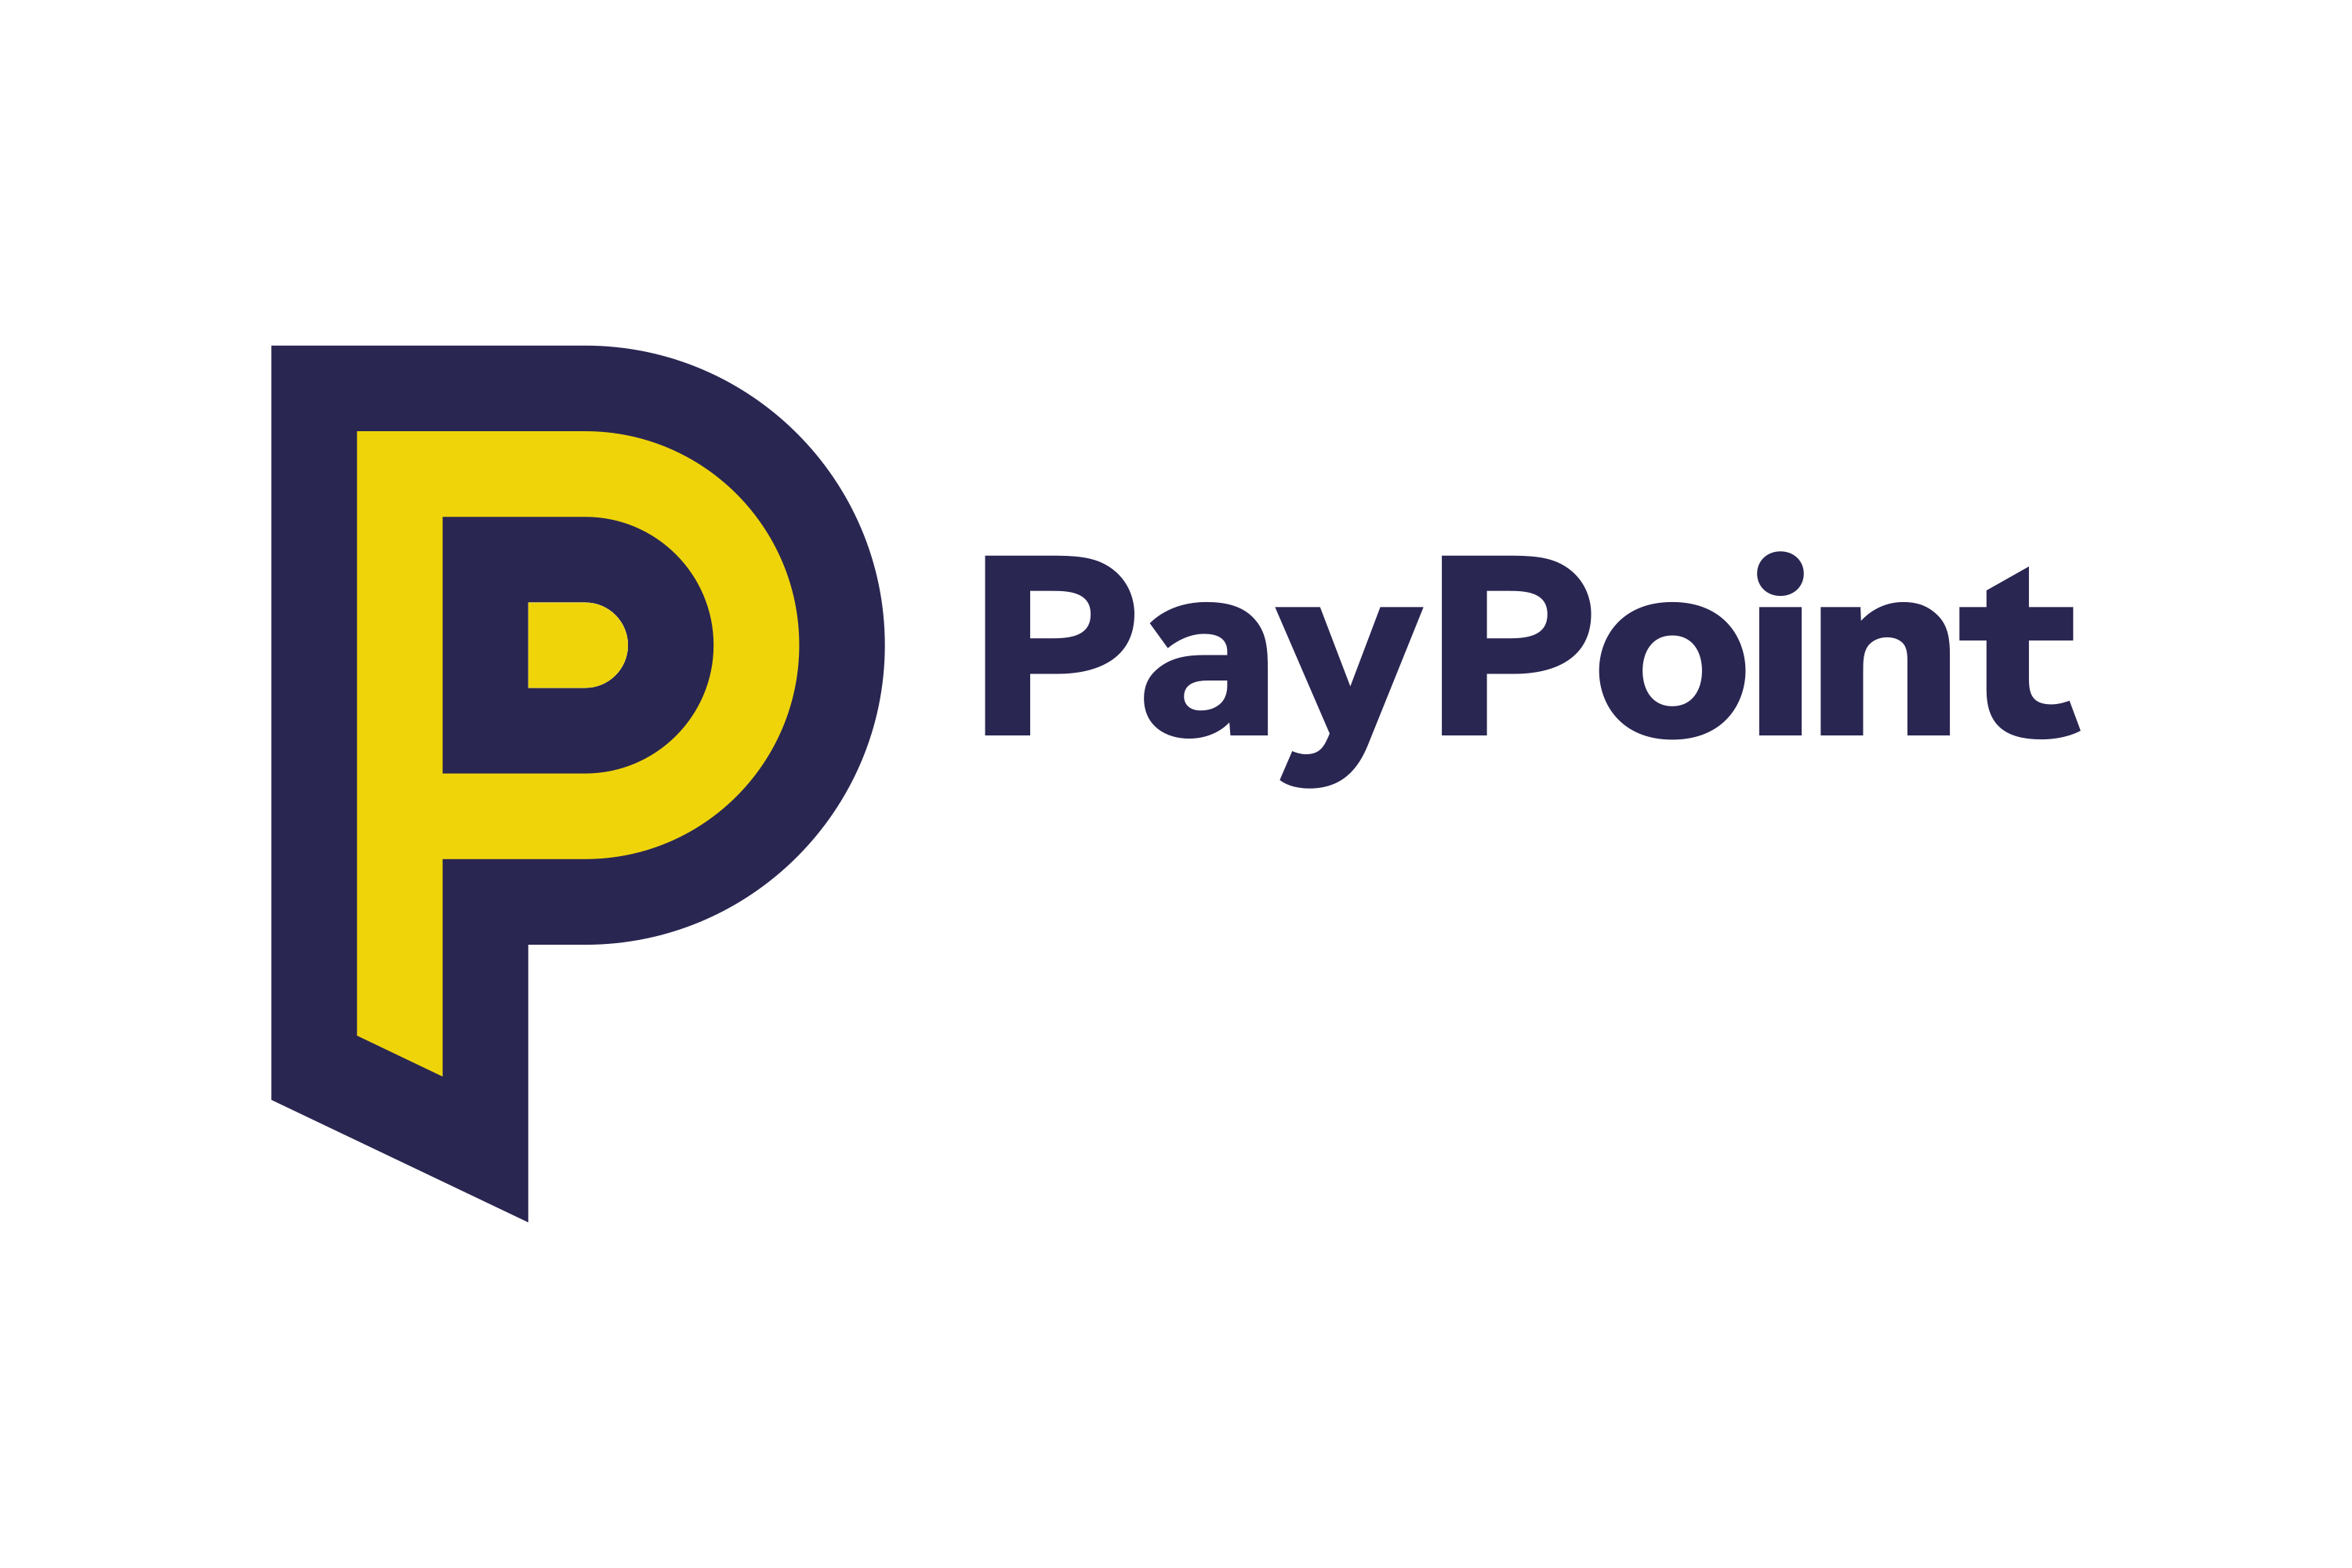 Leading Consumer Brands Partner With PayPoint to Offer Greater Convenience to Local Shoppers